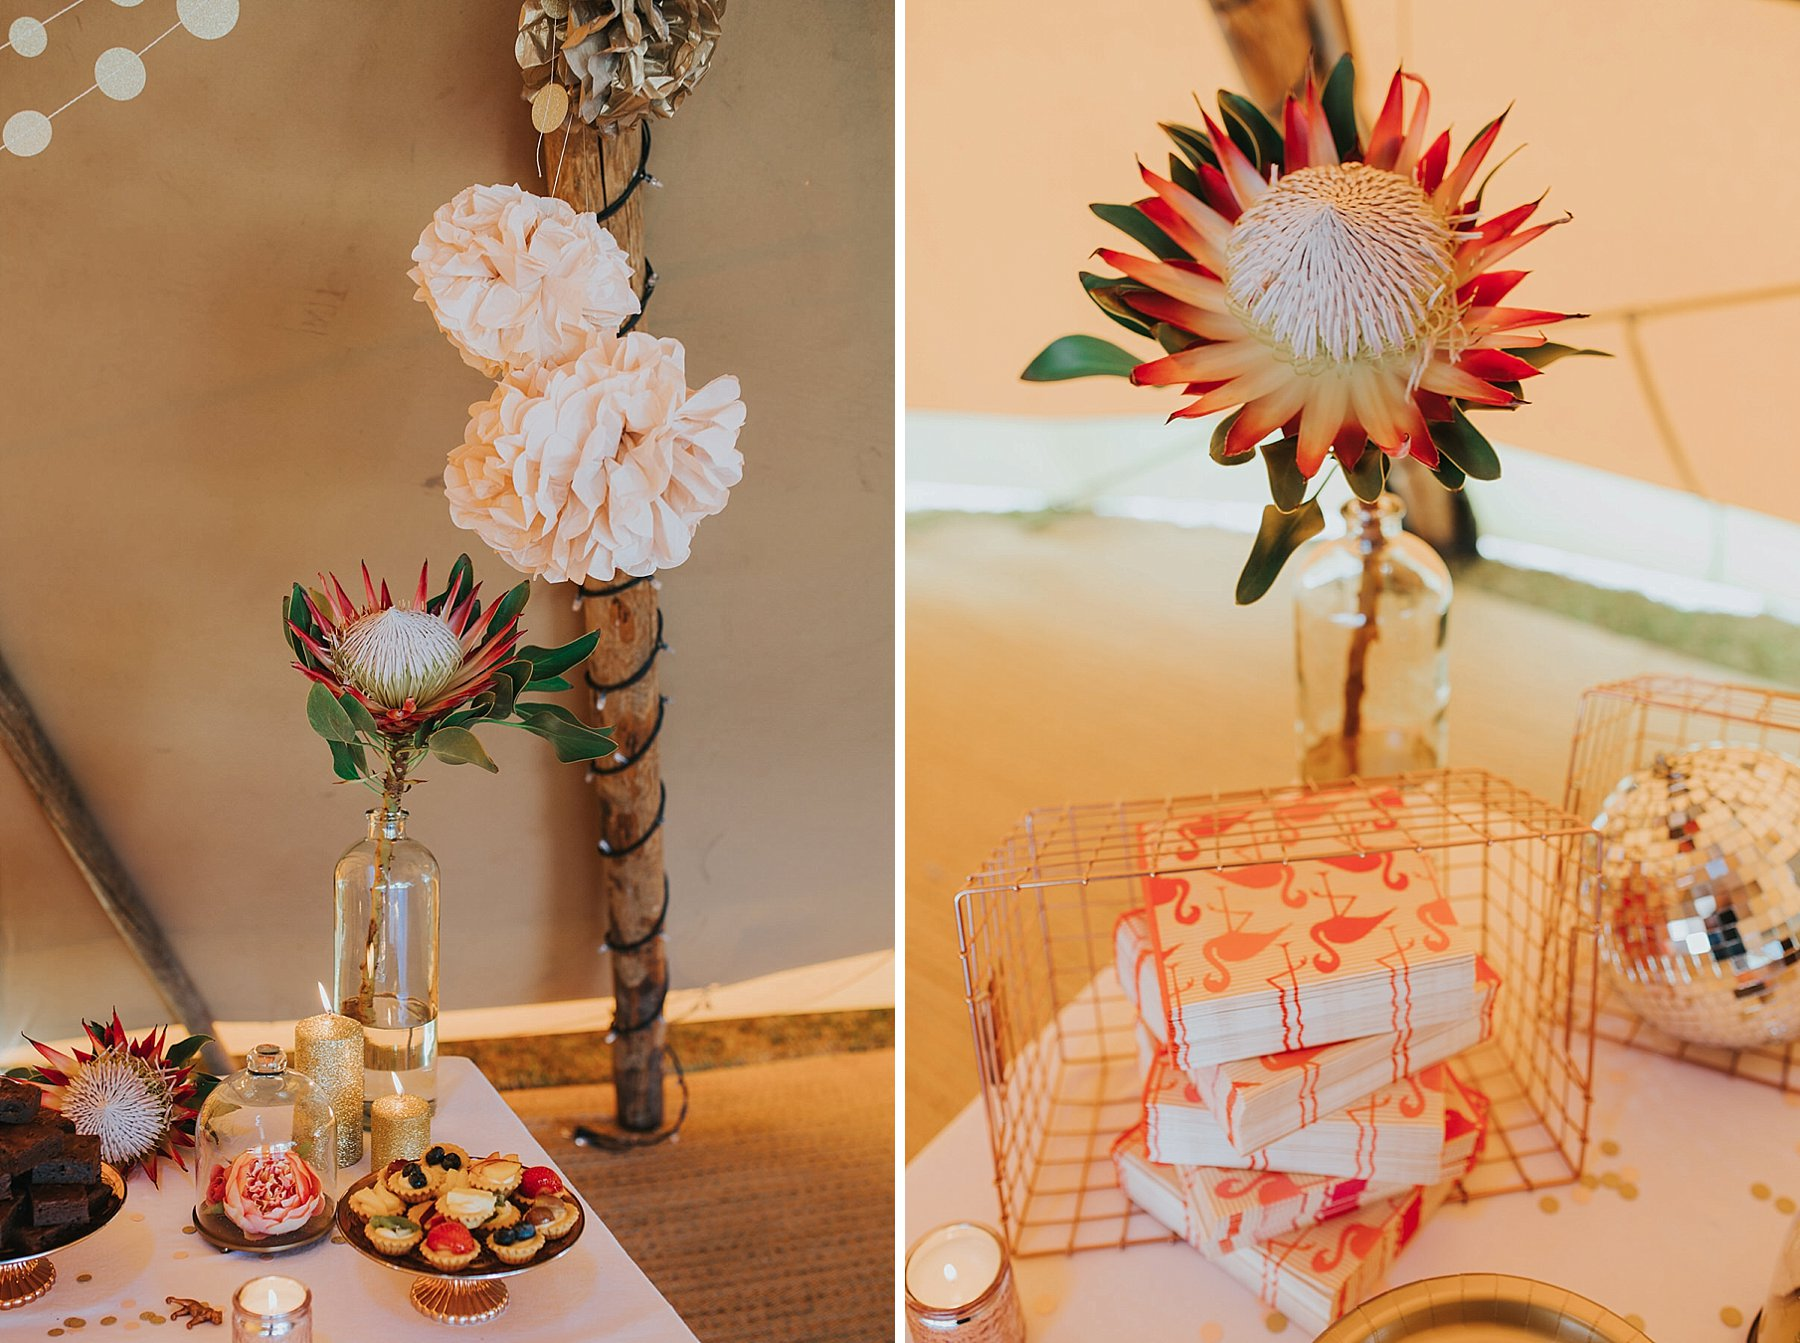 183 Knepp Castle festival tipi wedding cake table giant proteas.jpg